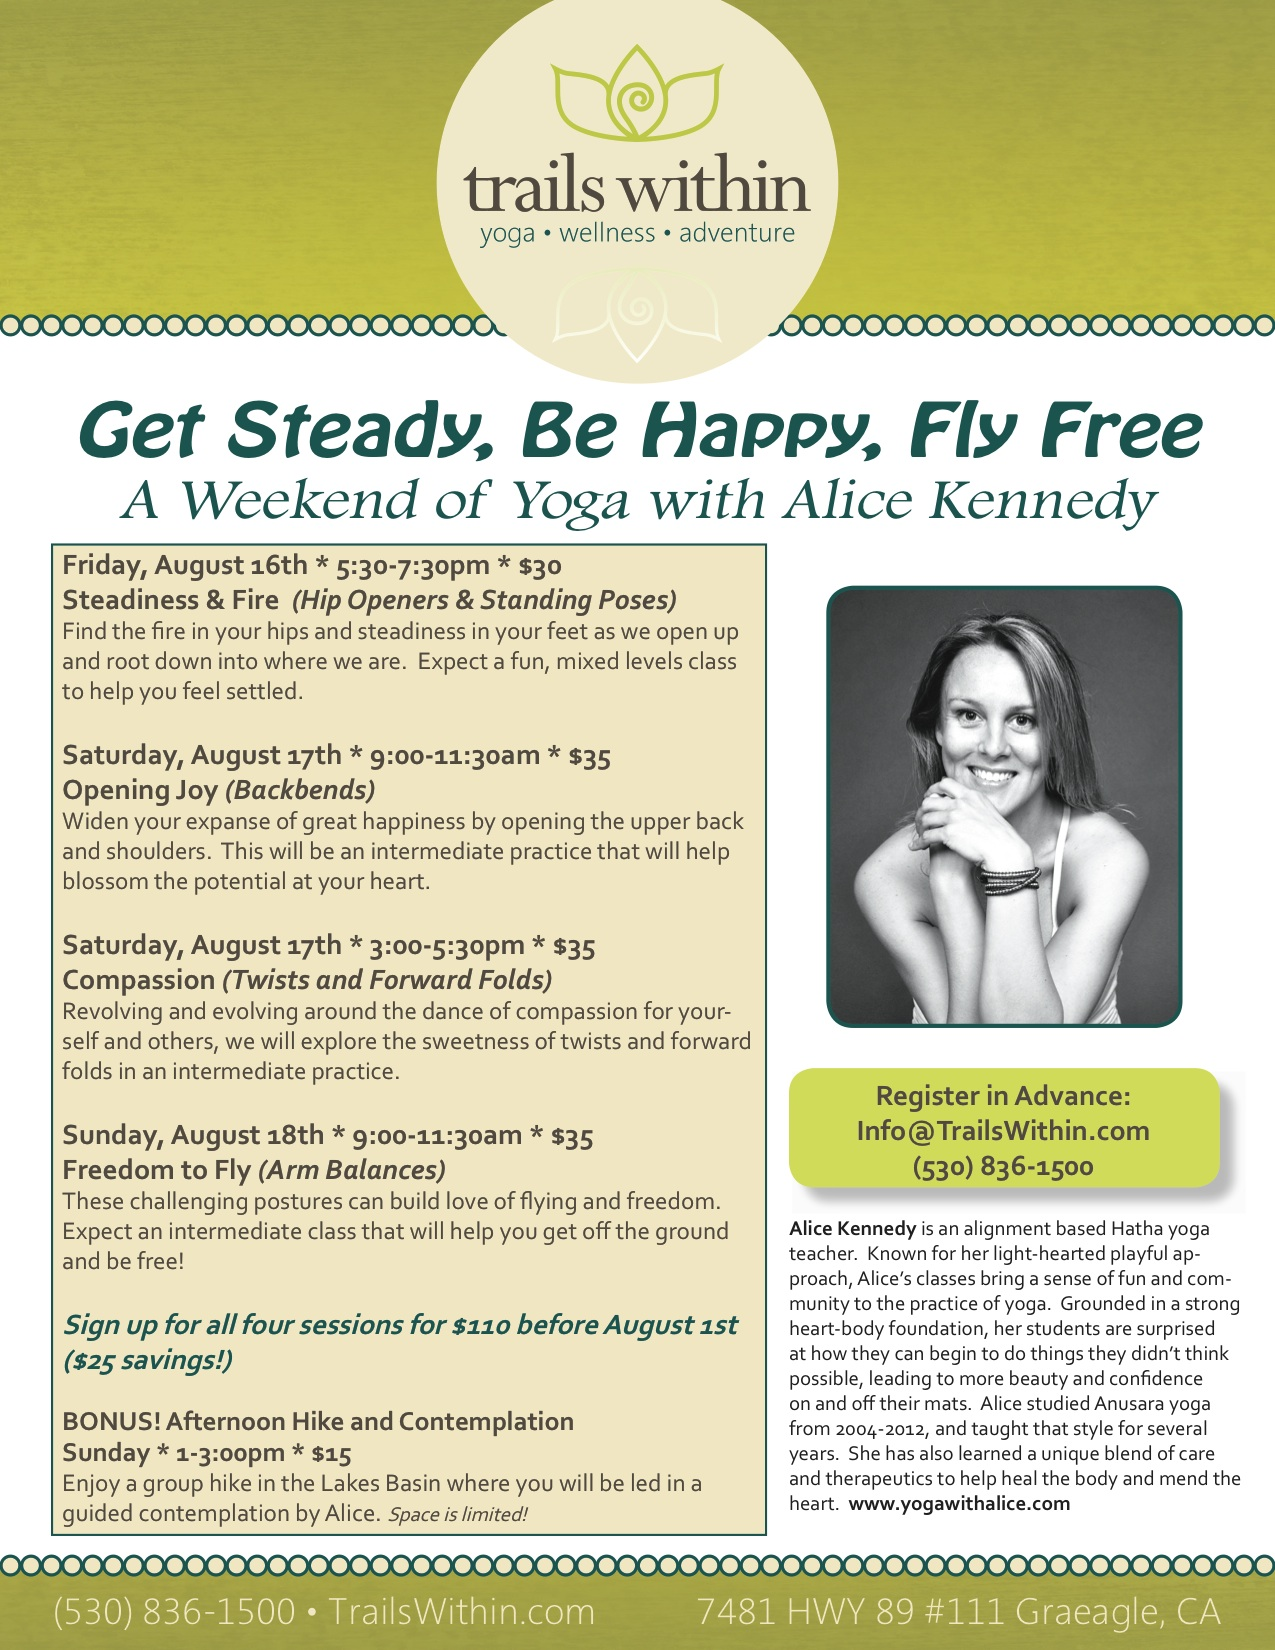 Get Steady, Be Happy, Fly Free poster